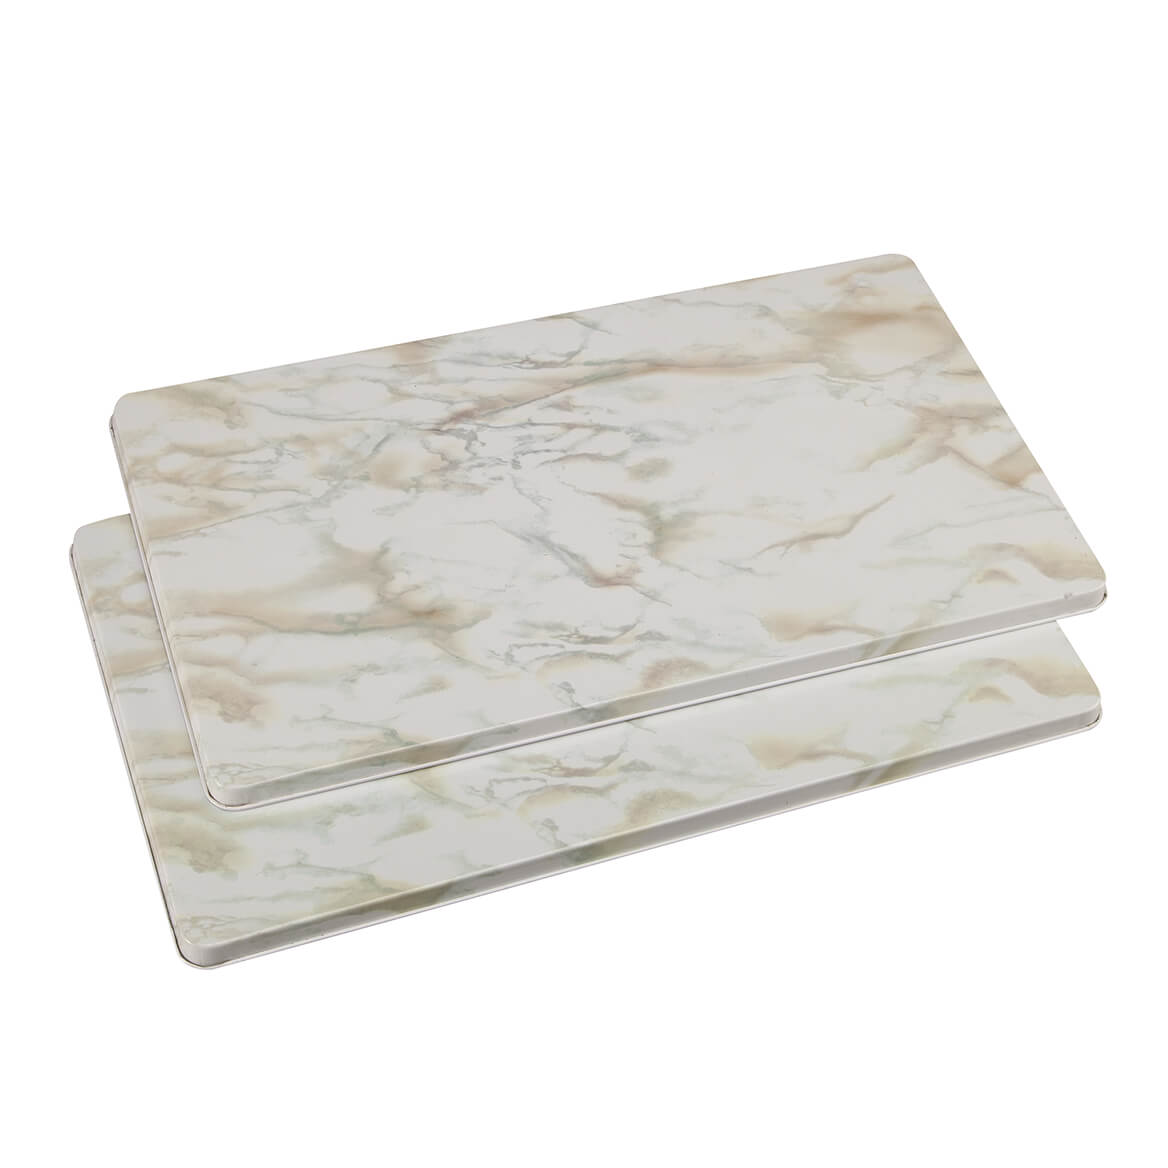 White Marble Burner Covers Set of 2-362361